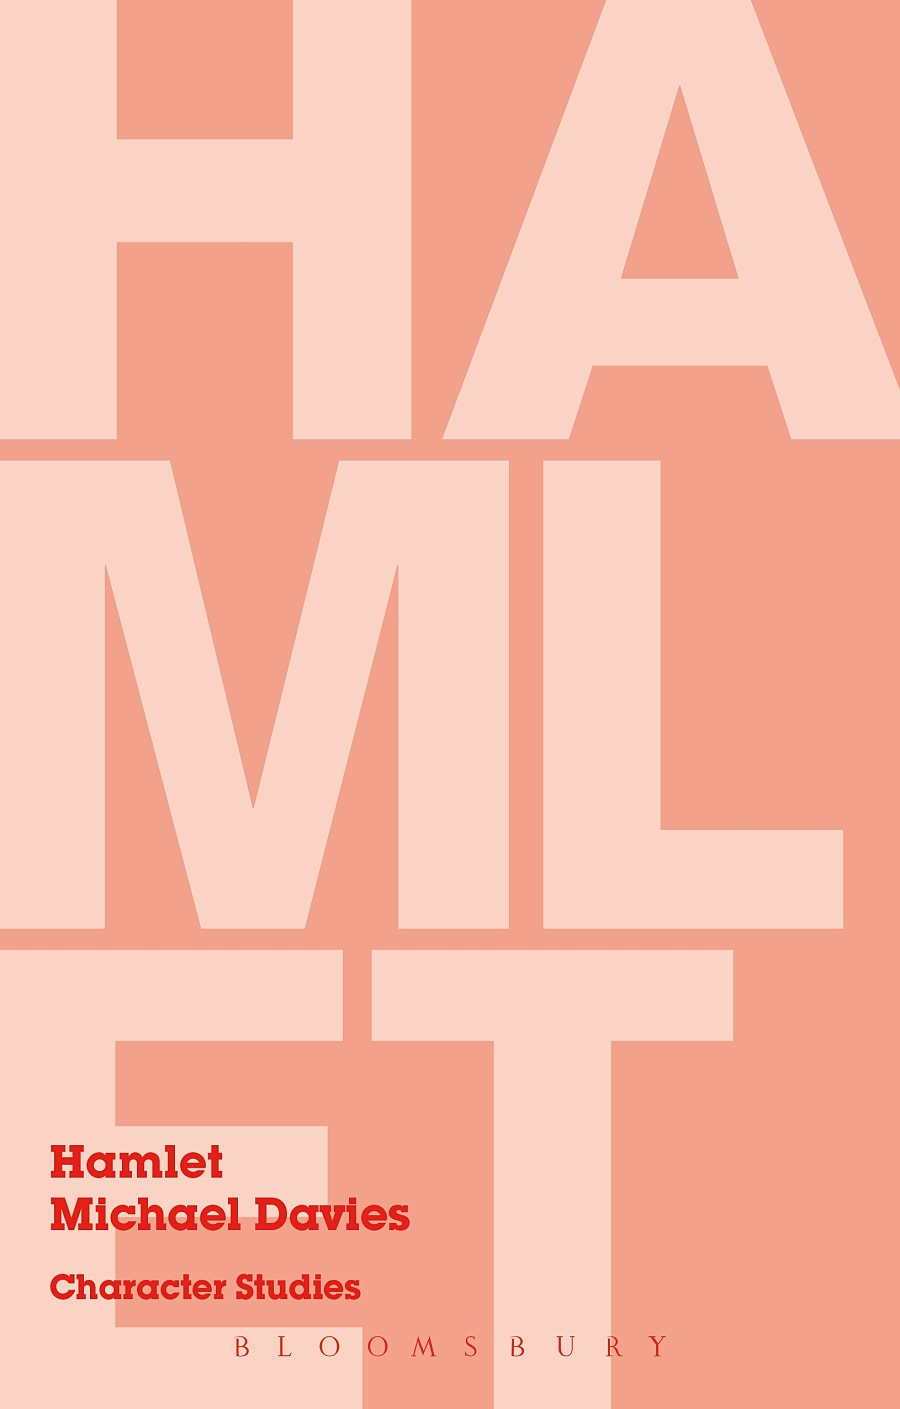 Hamlet by Michael Davies book cover